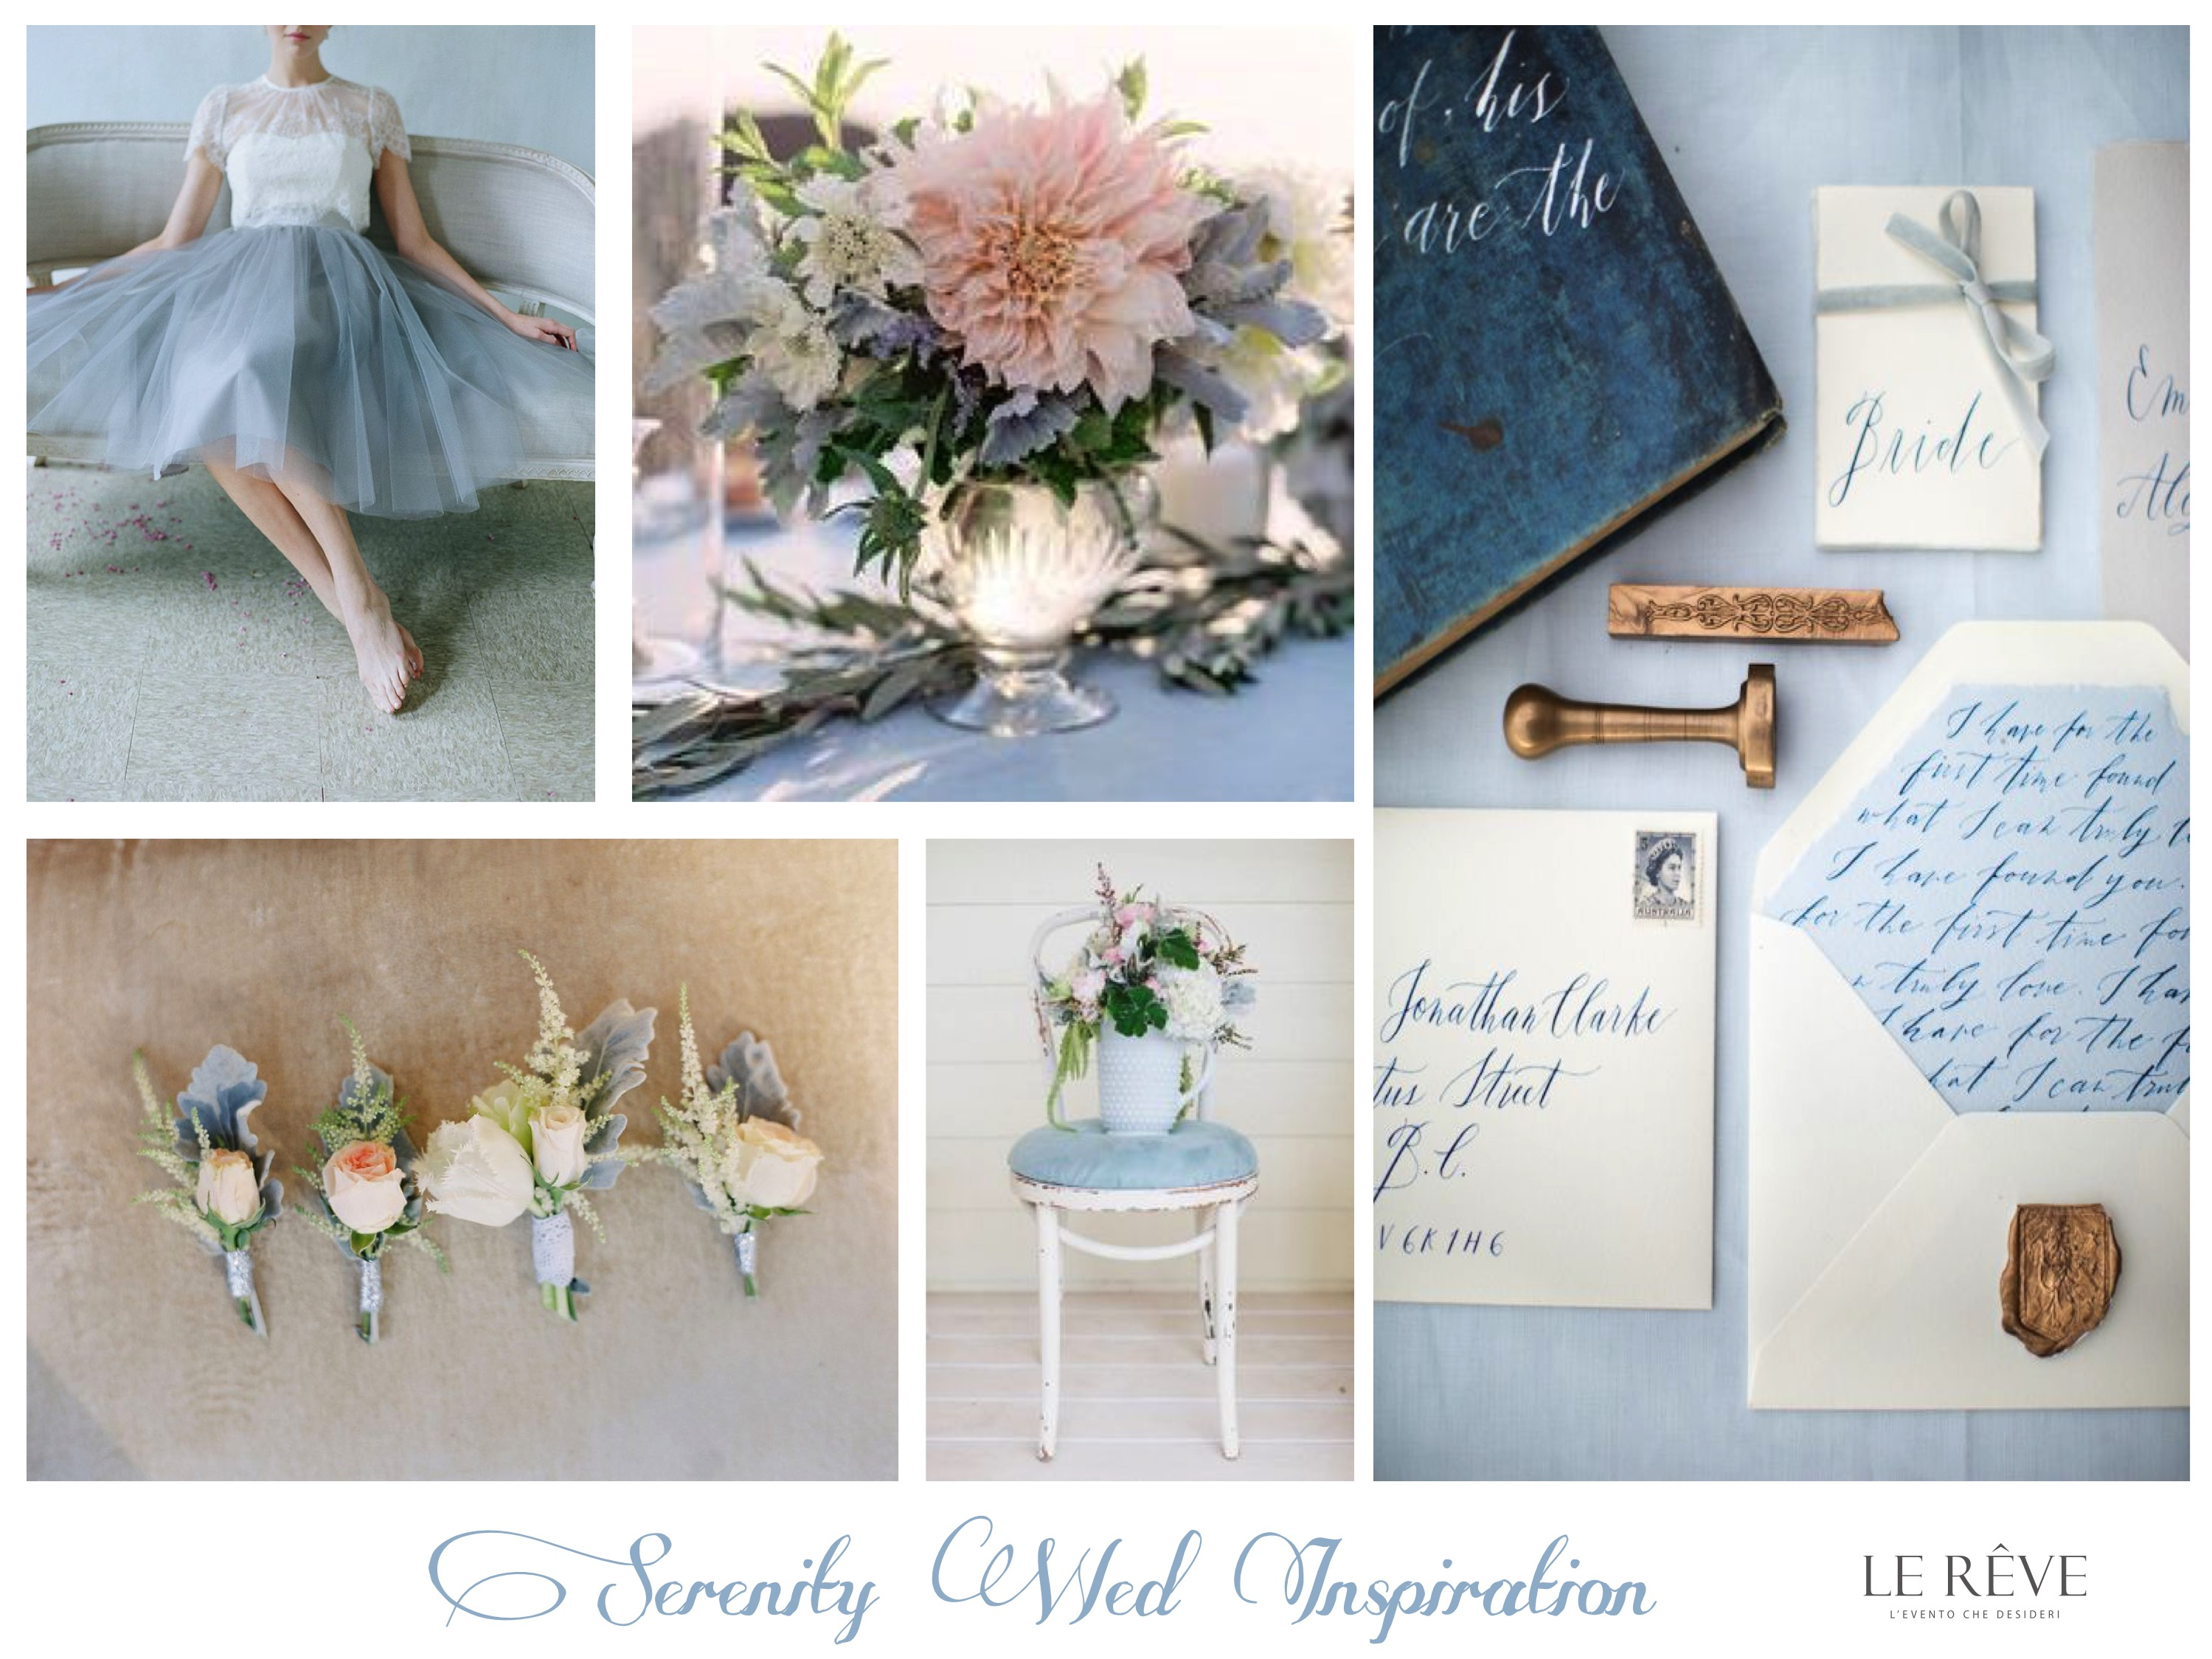 wedding inspiration board pantone trend 2016 Serenity